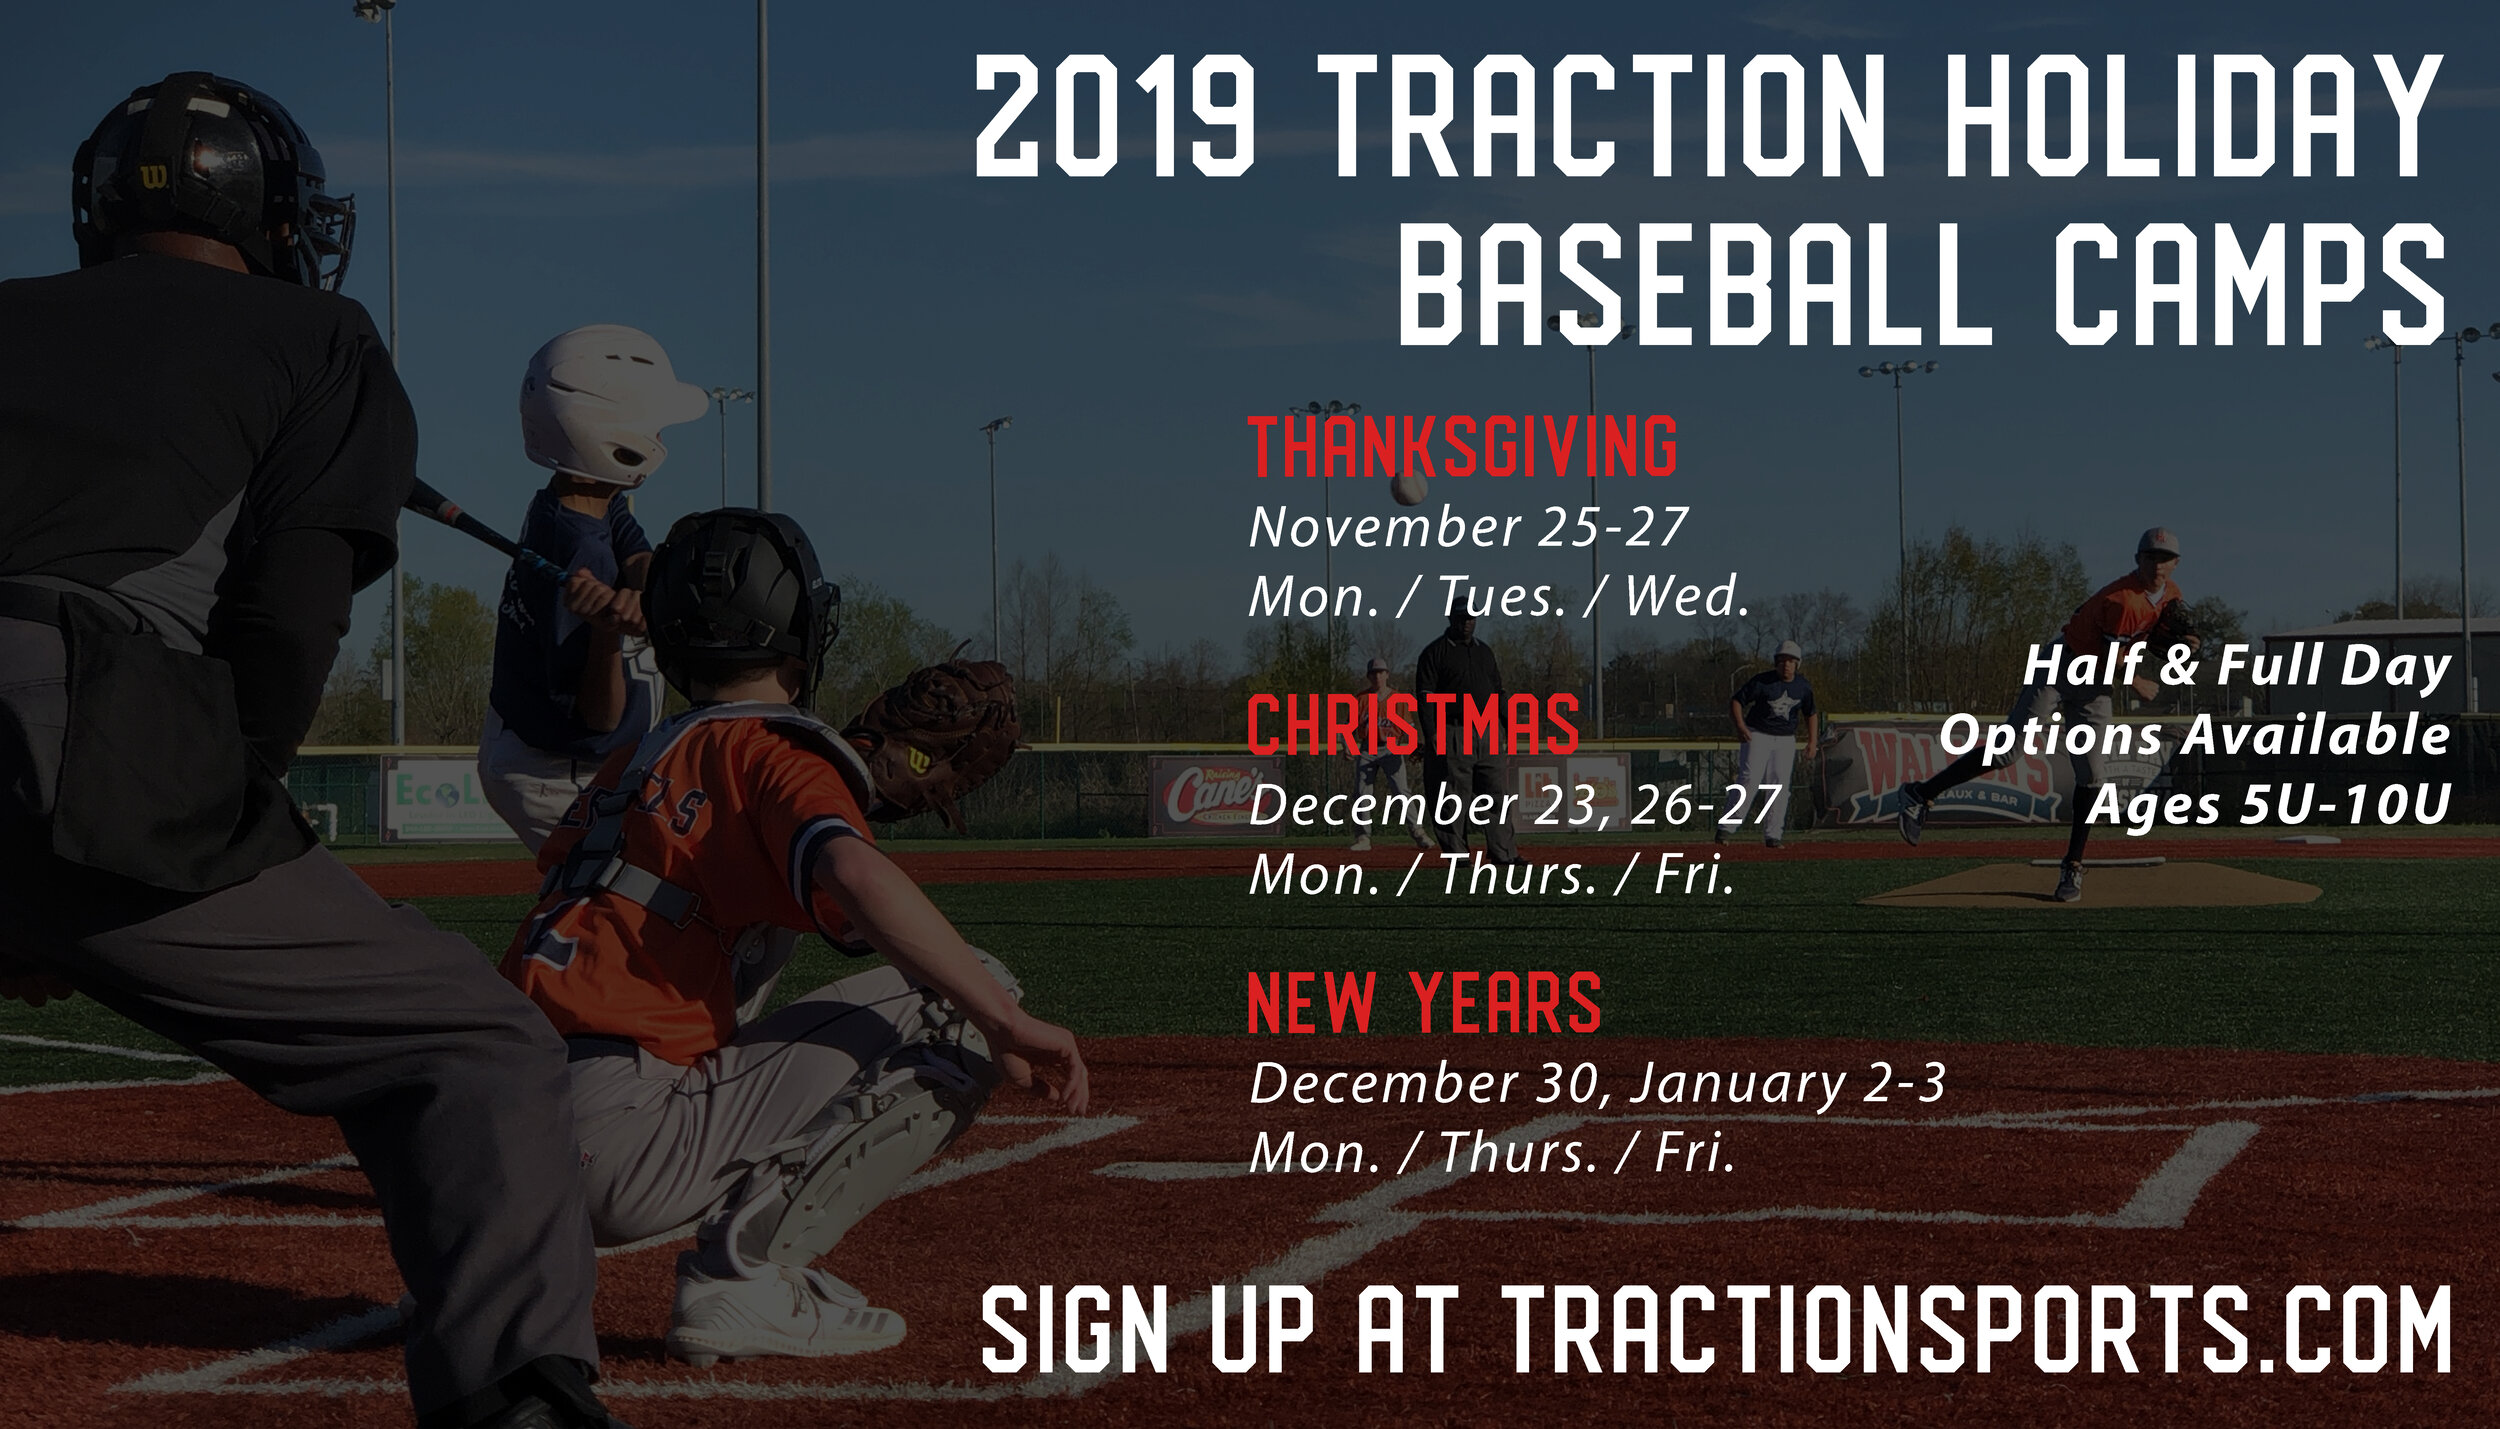 TSP-HolidayCamps19_baseball_sm.jpg